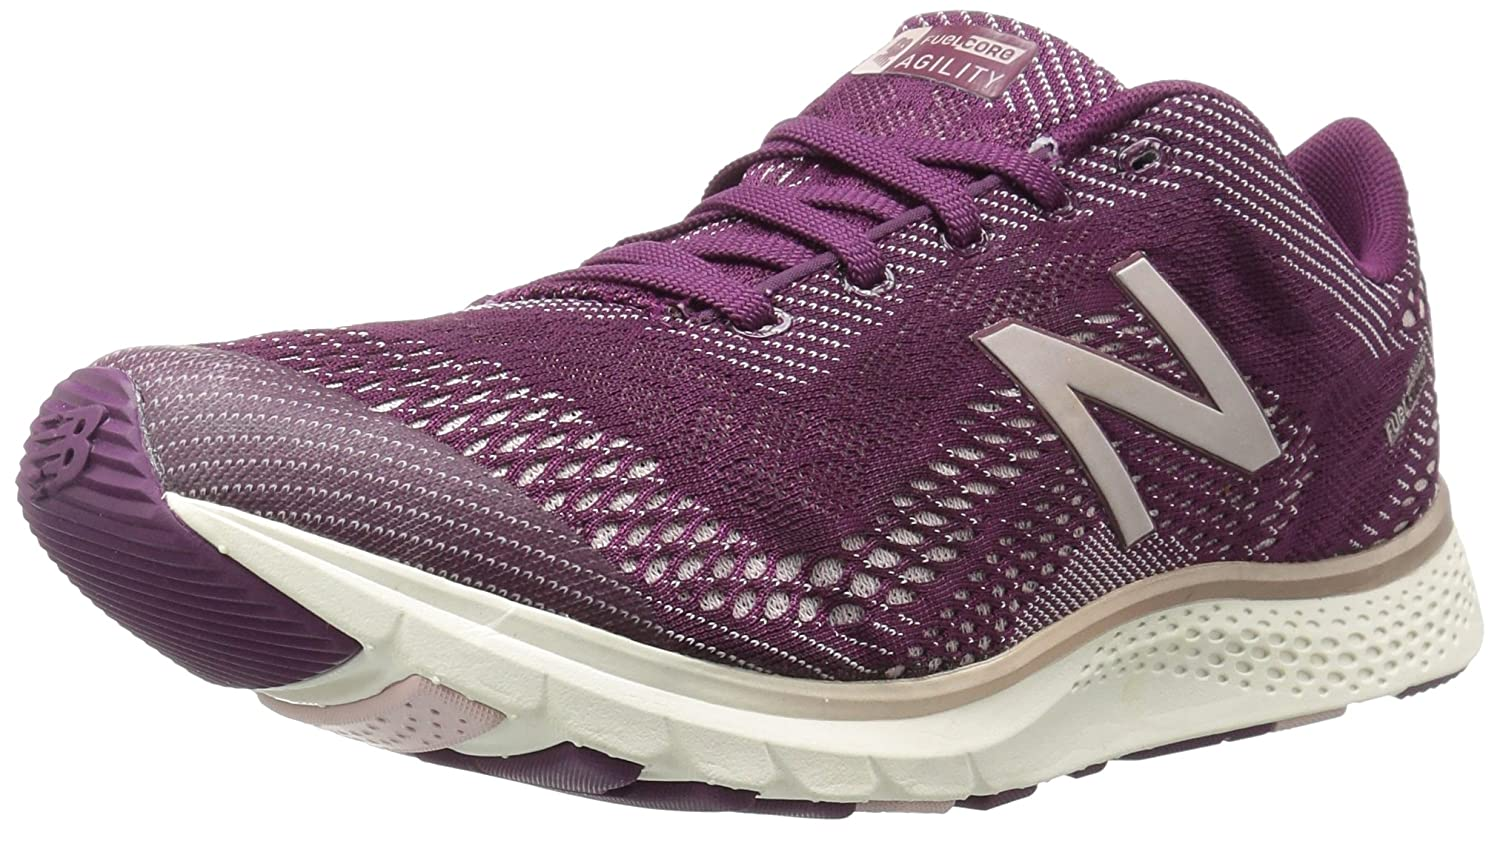 New Balance Women's FuelCore Agility v2 Cross Trainer B01MQZQKN6 7 D US|Dark Mulberry/Faded Rose